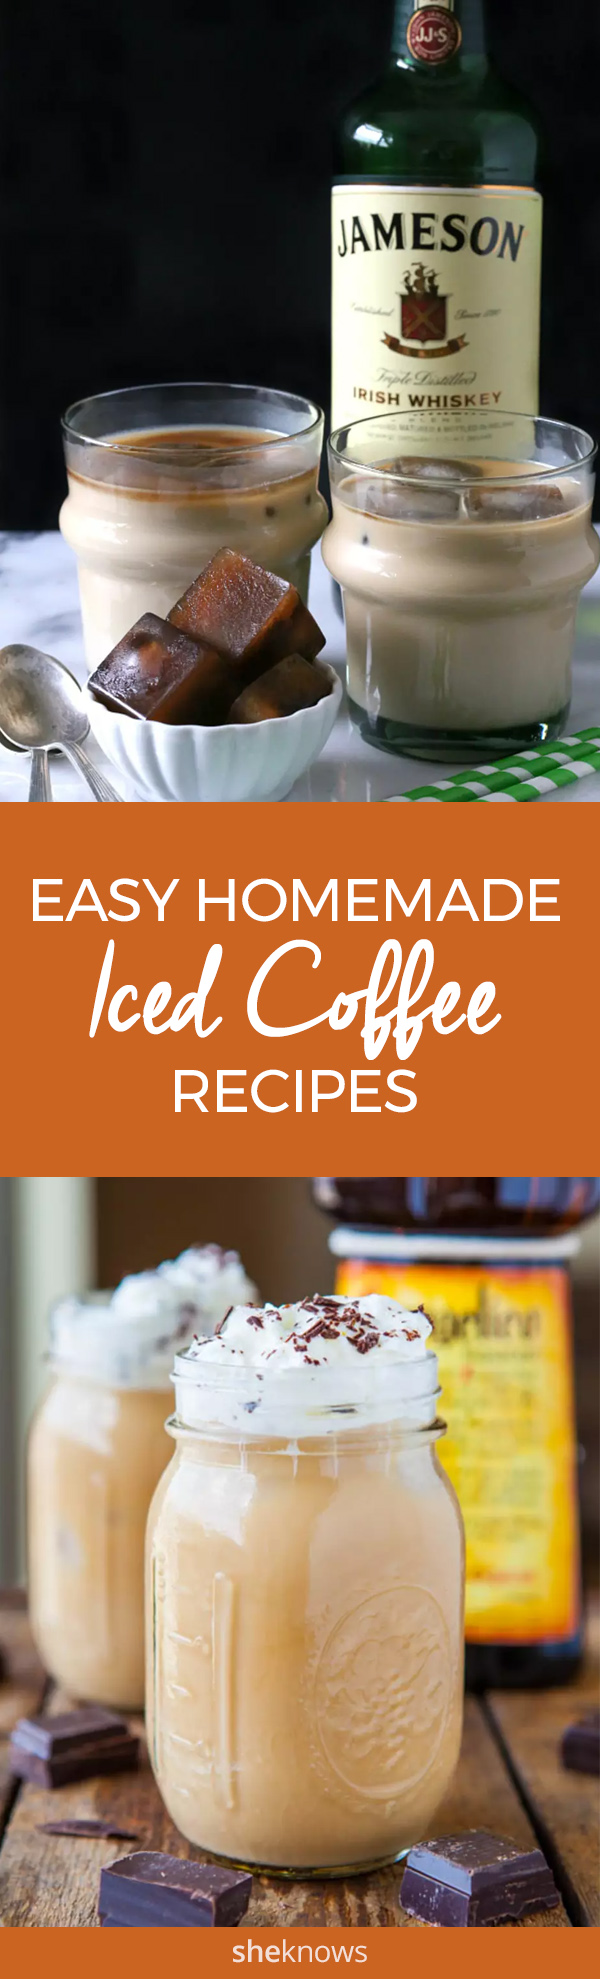 Pin it! Iced Coffee recipes